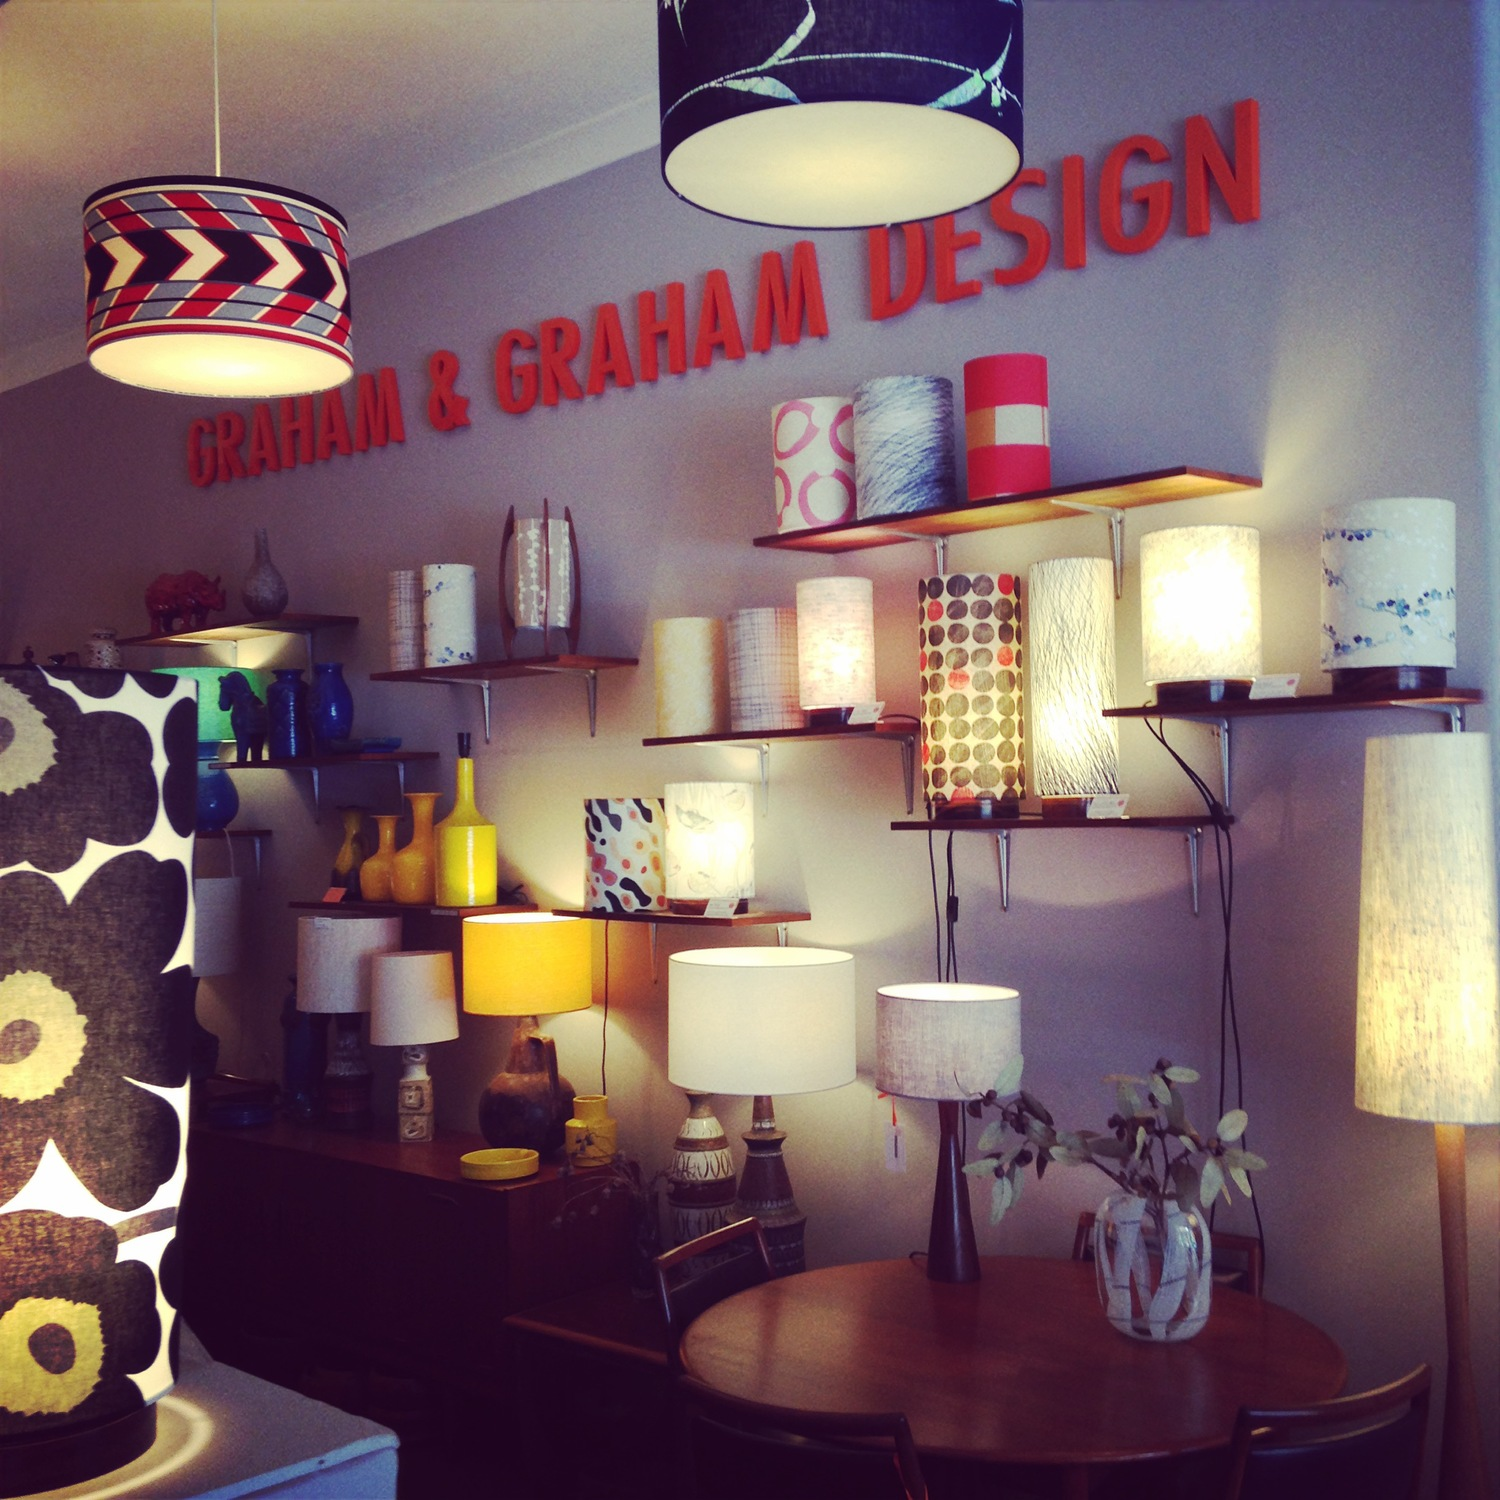 GRAHAM & GRAHAM DESIGN Handmade Lampshades & Lighting Sydney